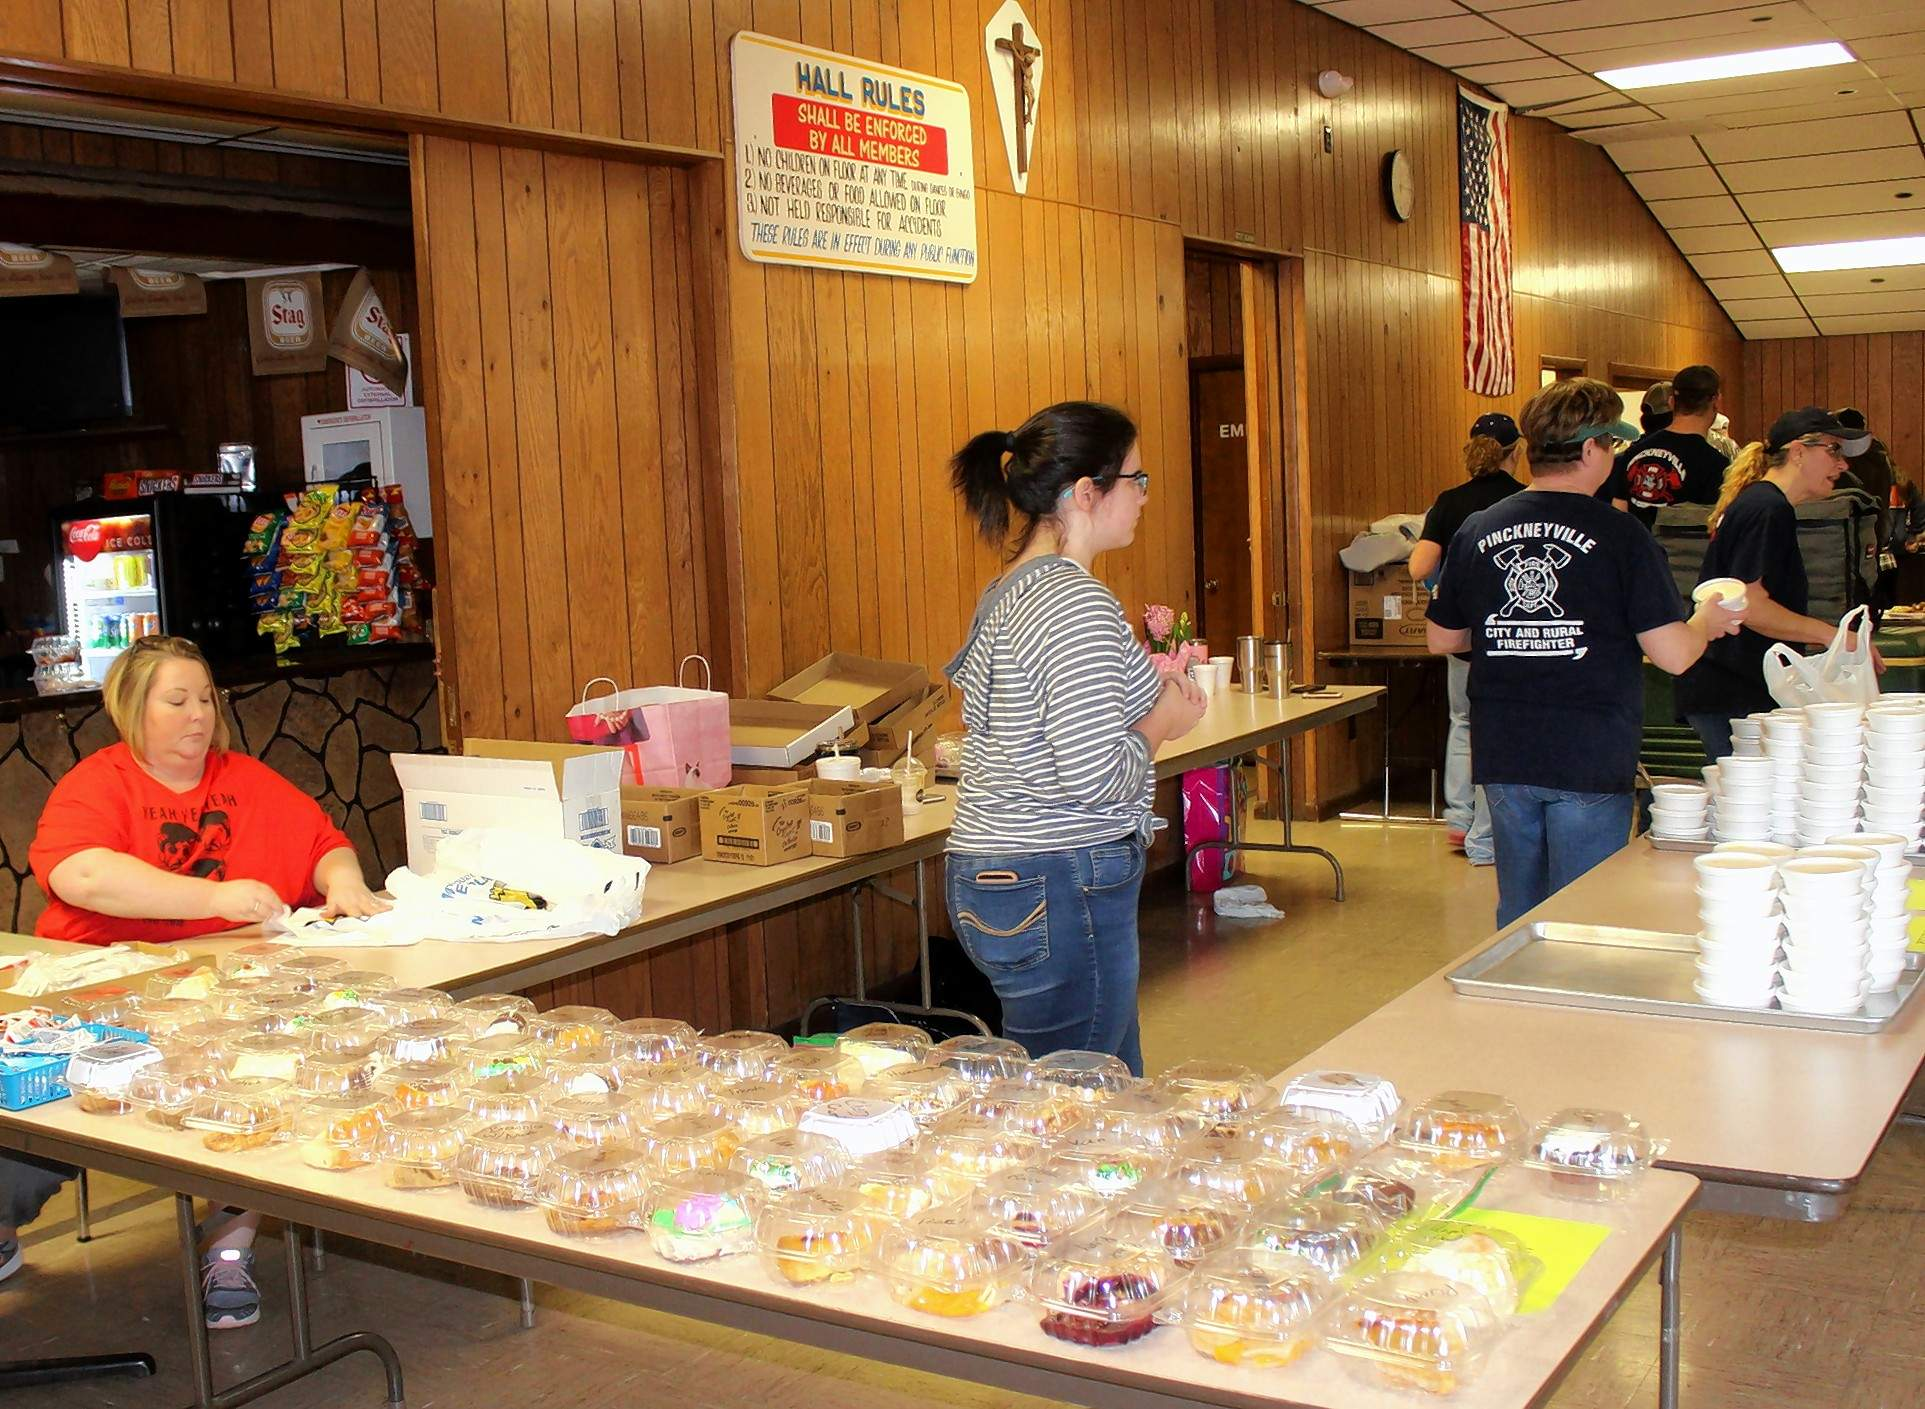 Desserts were available with fish dinners Friday at the fire department fundraiser in Pinckneyville.